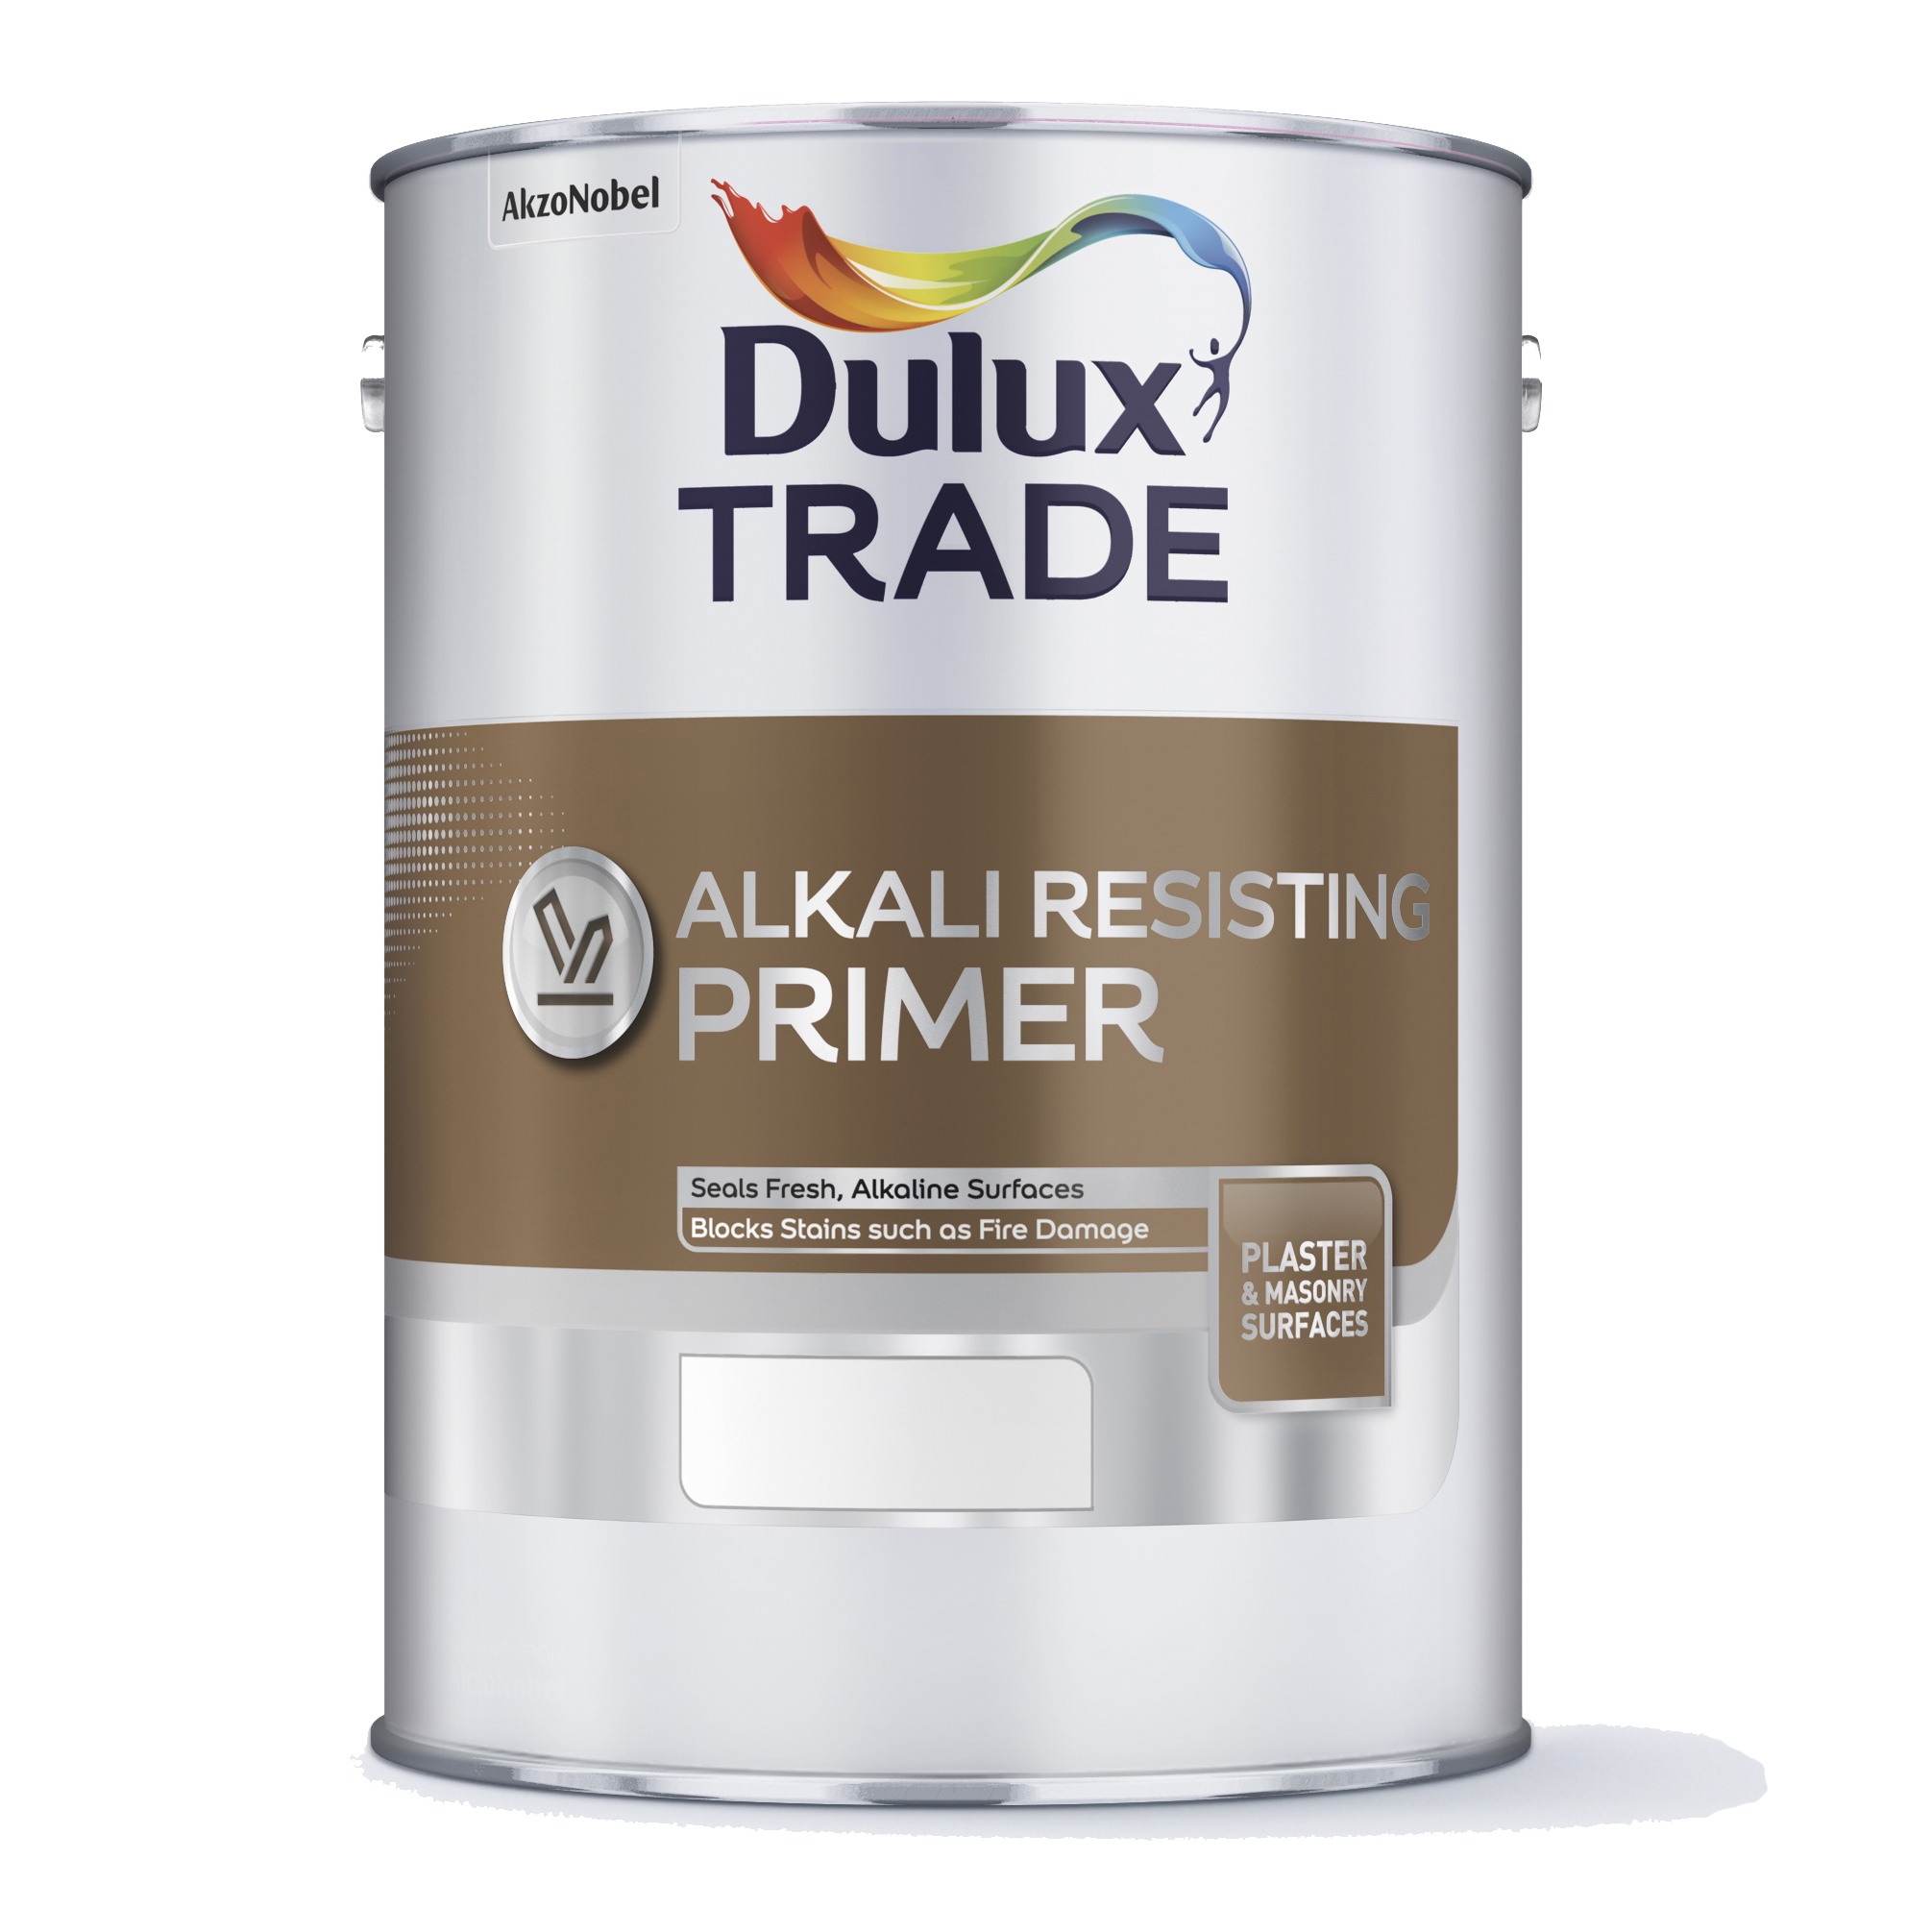 Dulux Trade Solvent Based Paints